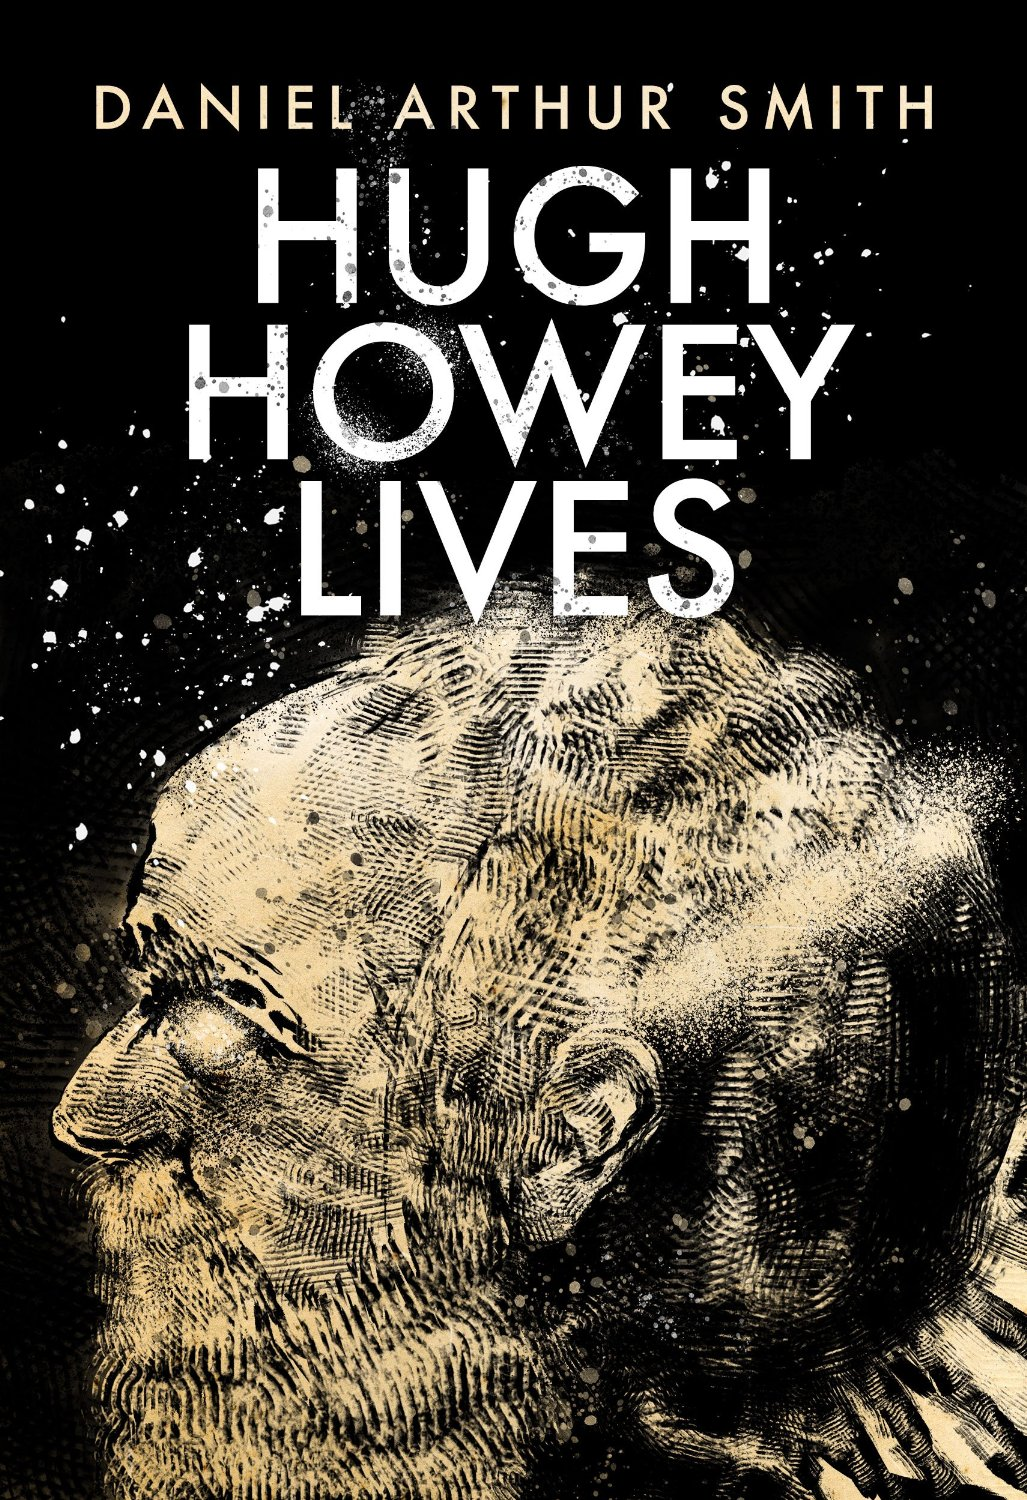 Hugh Howey Lives by Daniel Arthur Smith